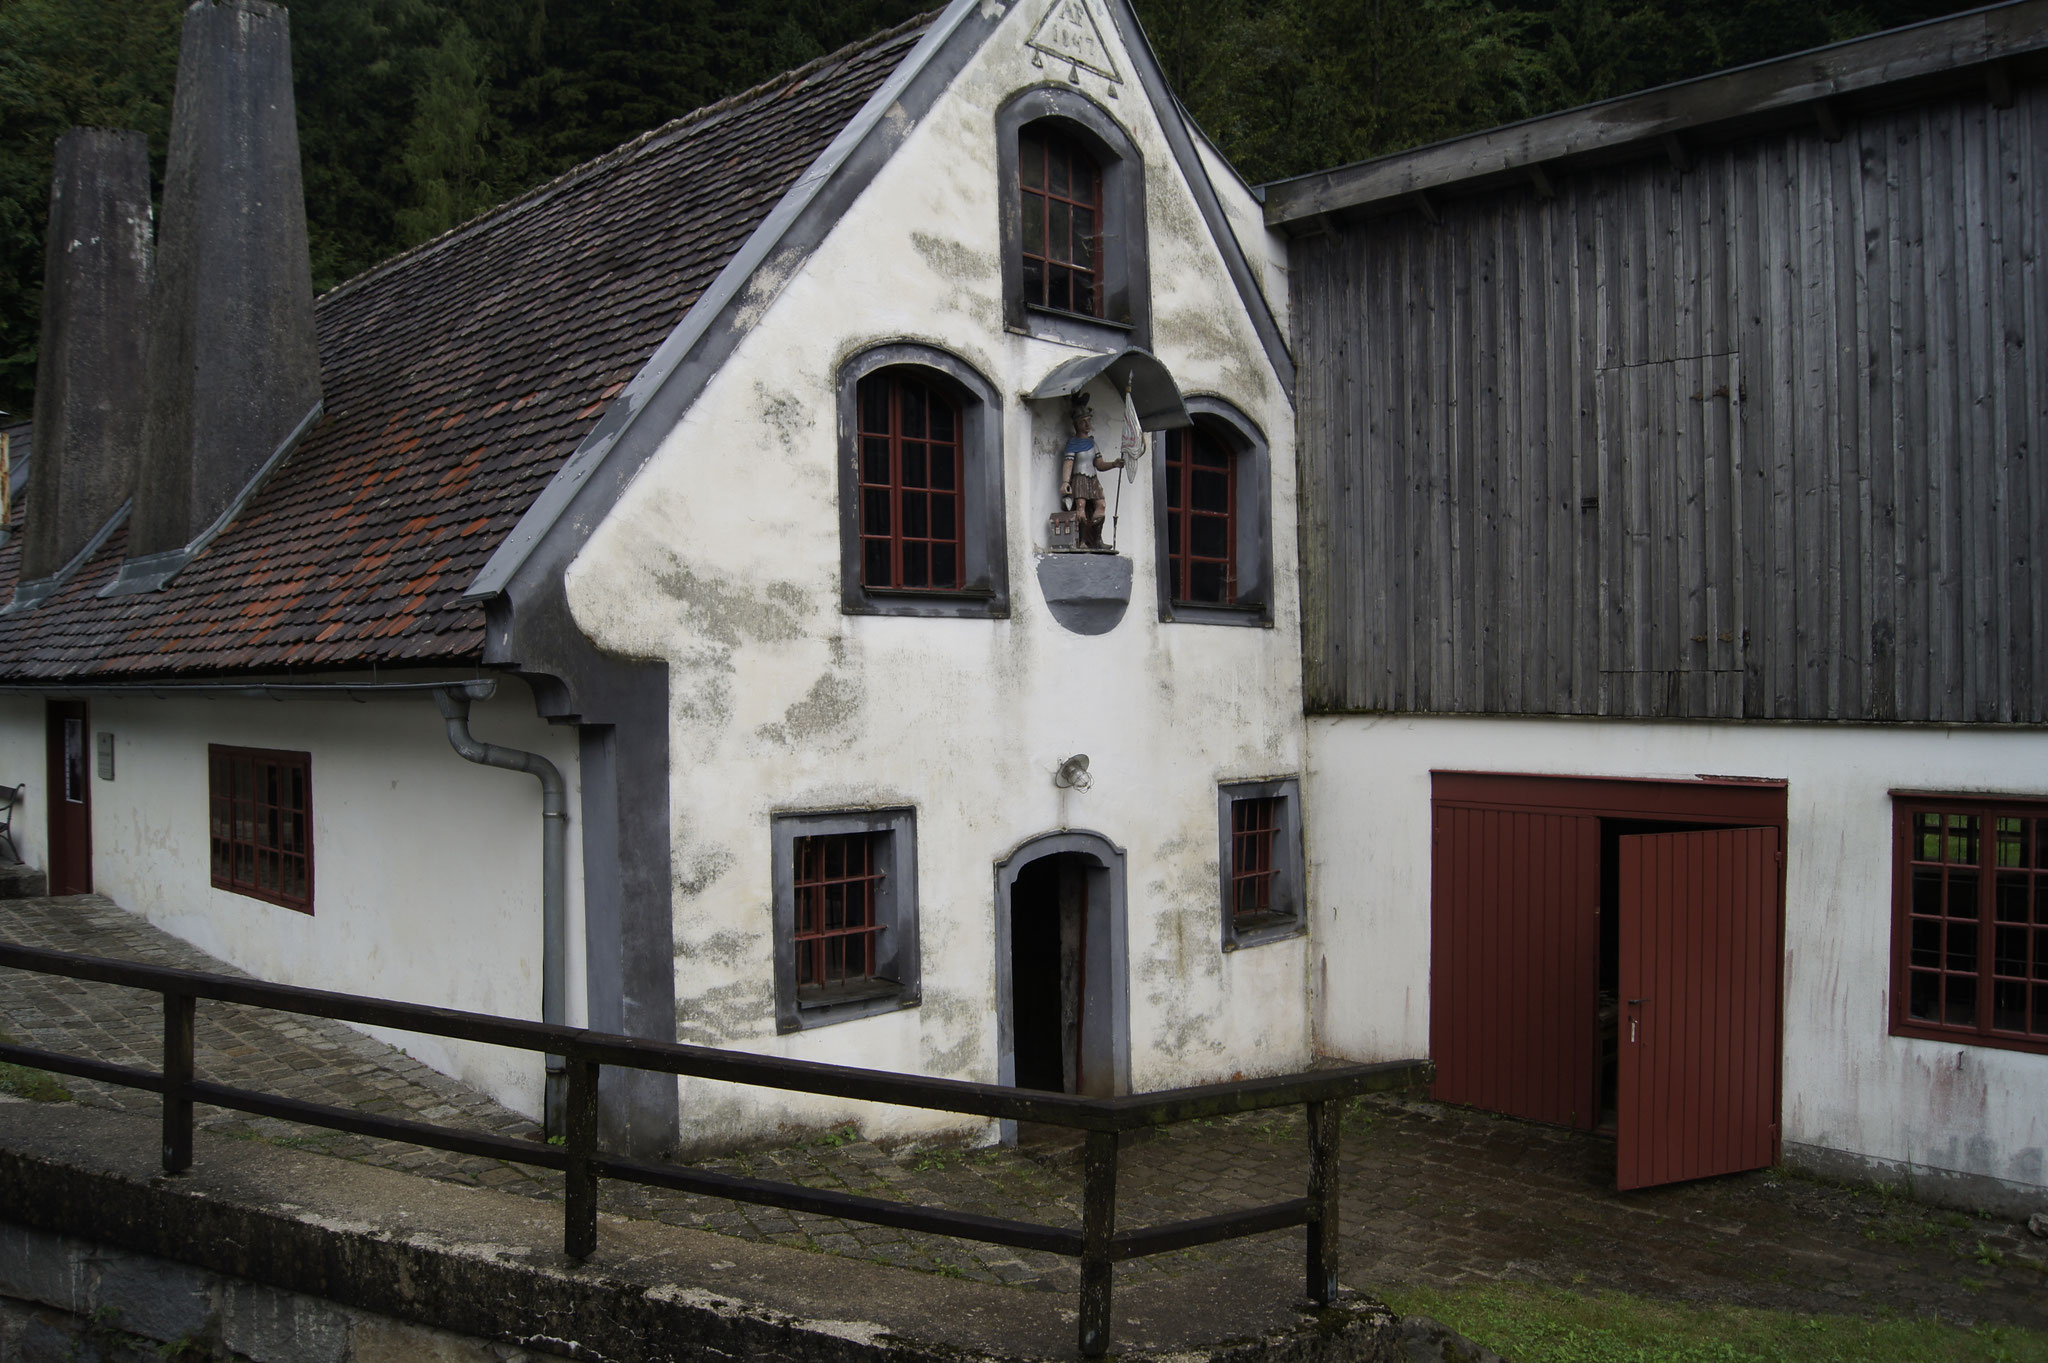 Schauschmiede in Ybbsitz